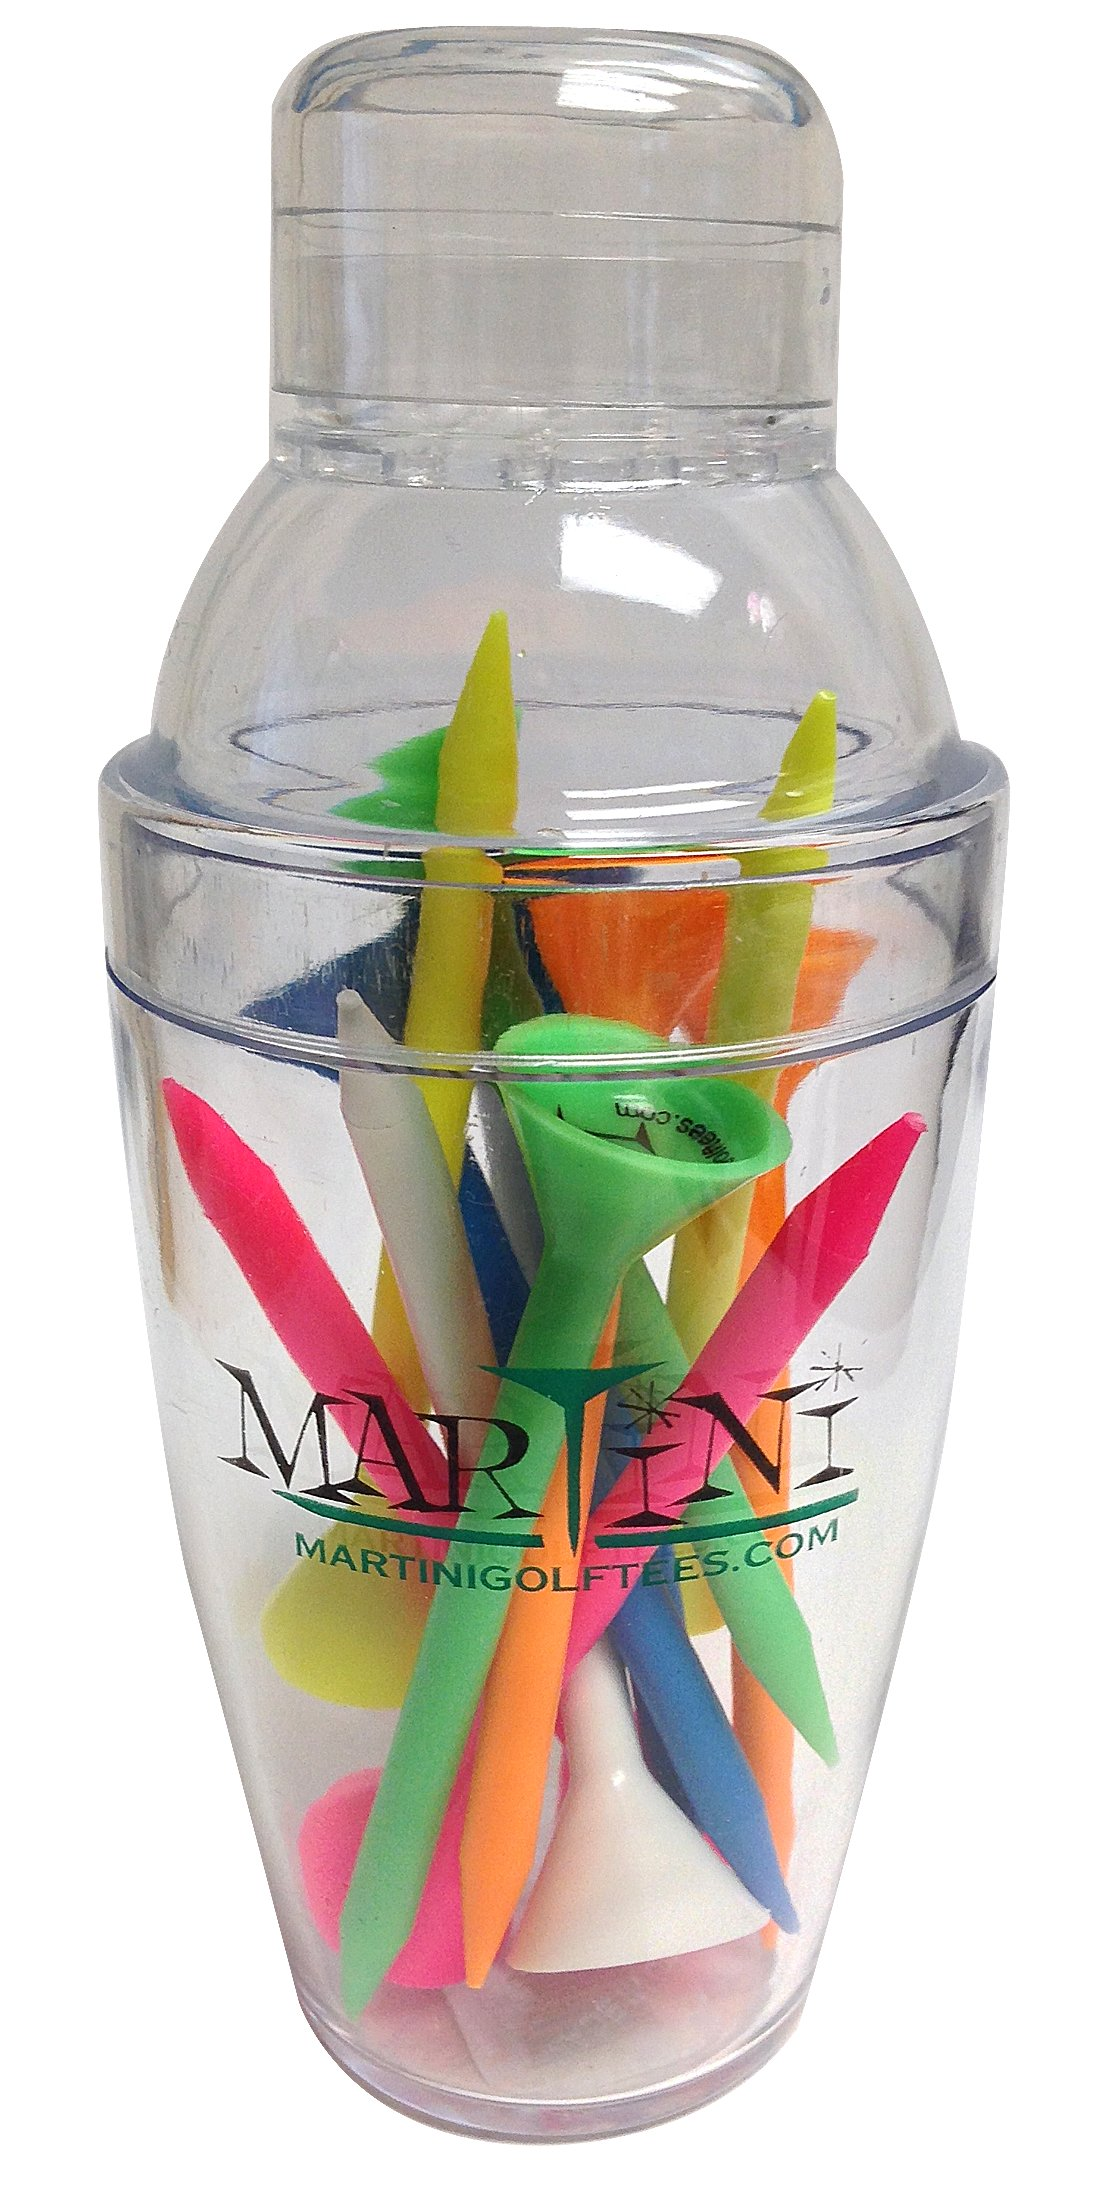 ProActive Sports Martini Golf Mini Shaker with 3-1/4'' Durable Plastic Tees 12-Pack of Assorted Colors